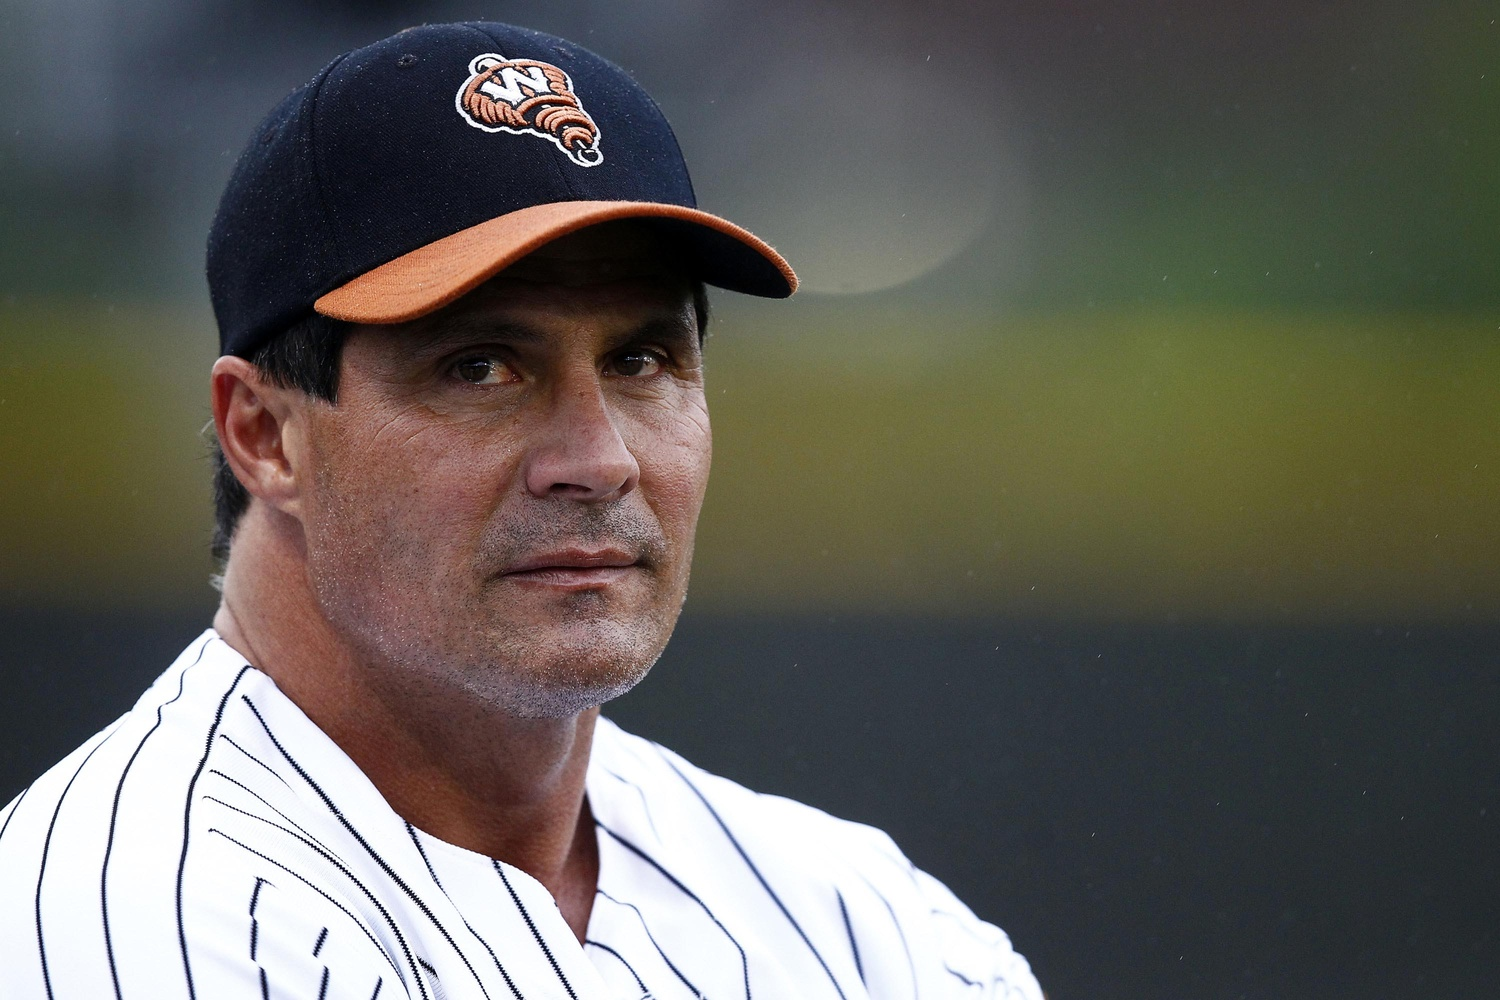 Jose Canseco: The Godfather Of Steroids In The MLB